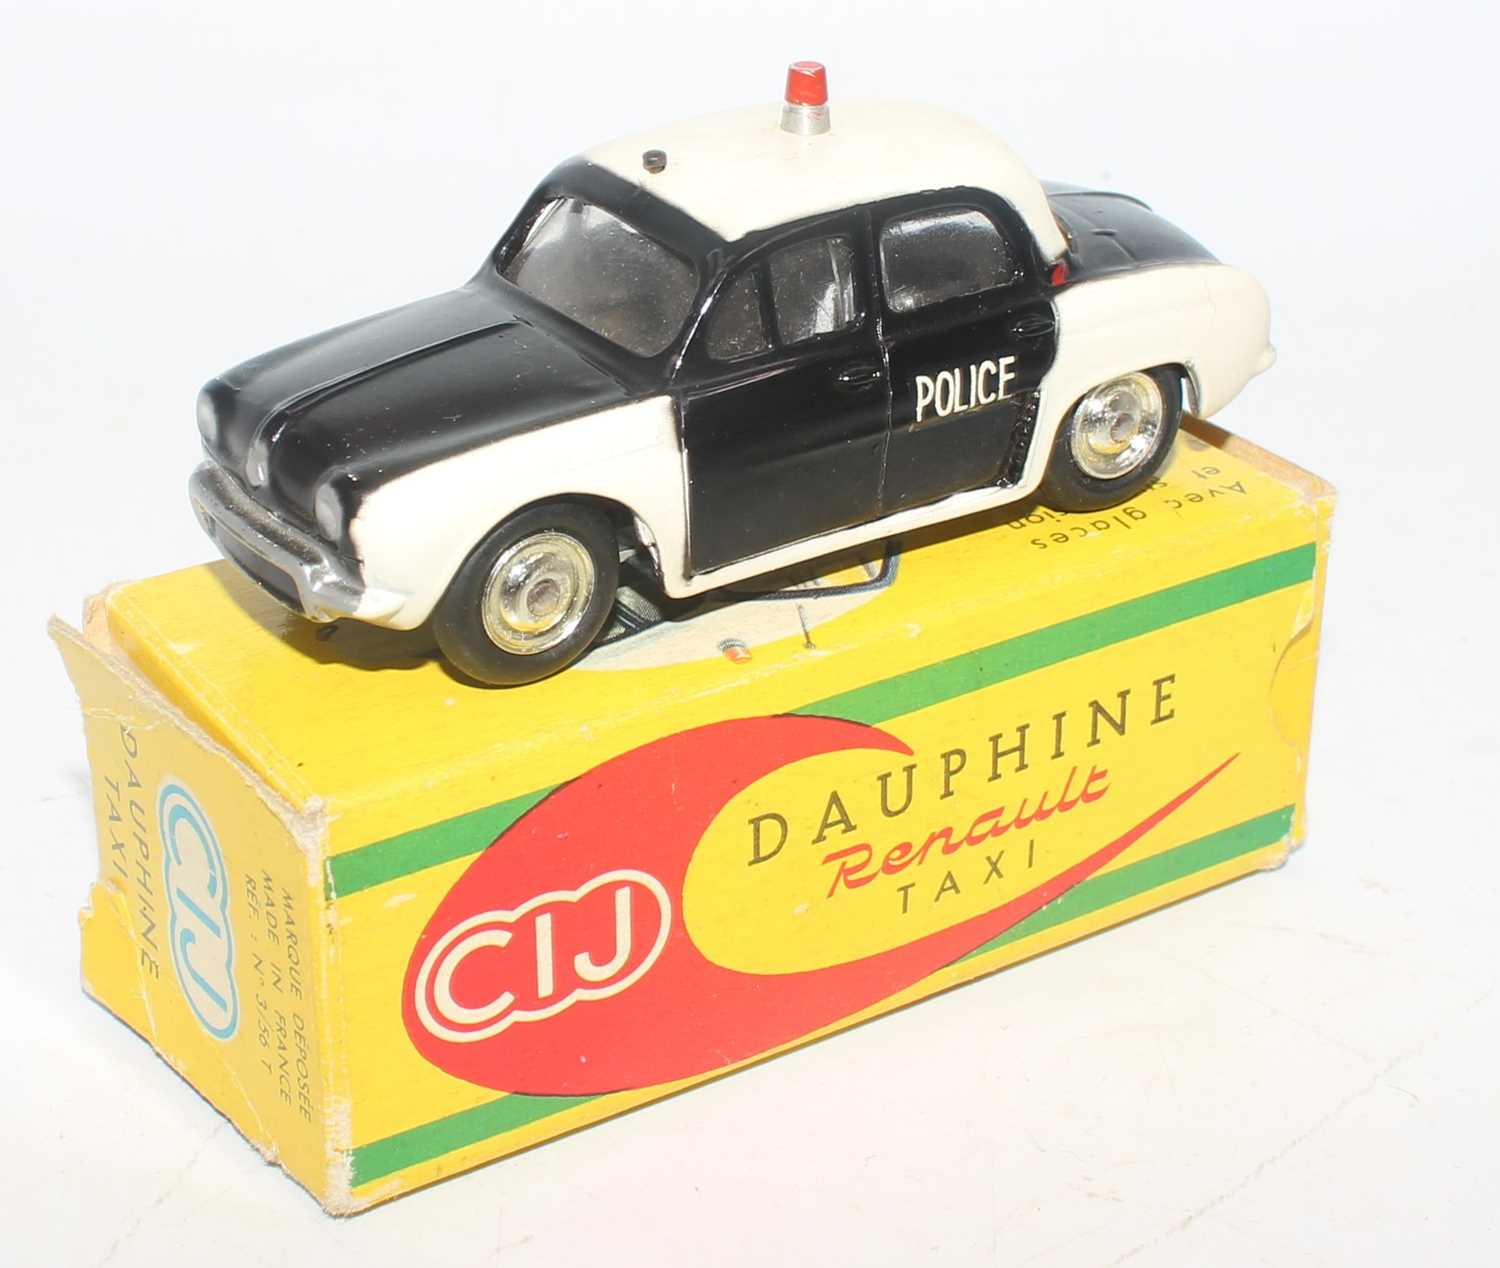 CIJ model No. 3/57 Renault Dauphine taxi comprising of two-tone white and black body with Police